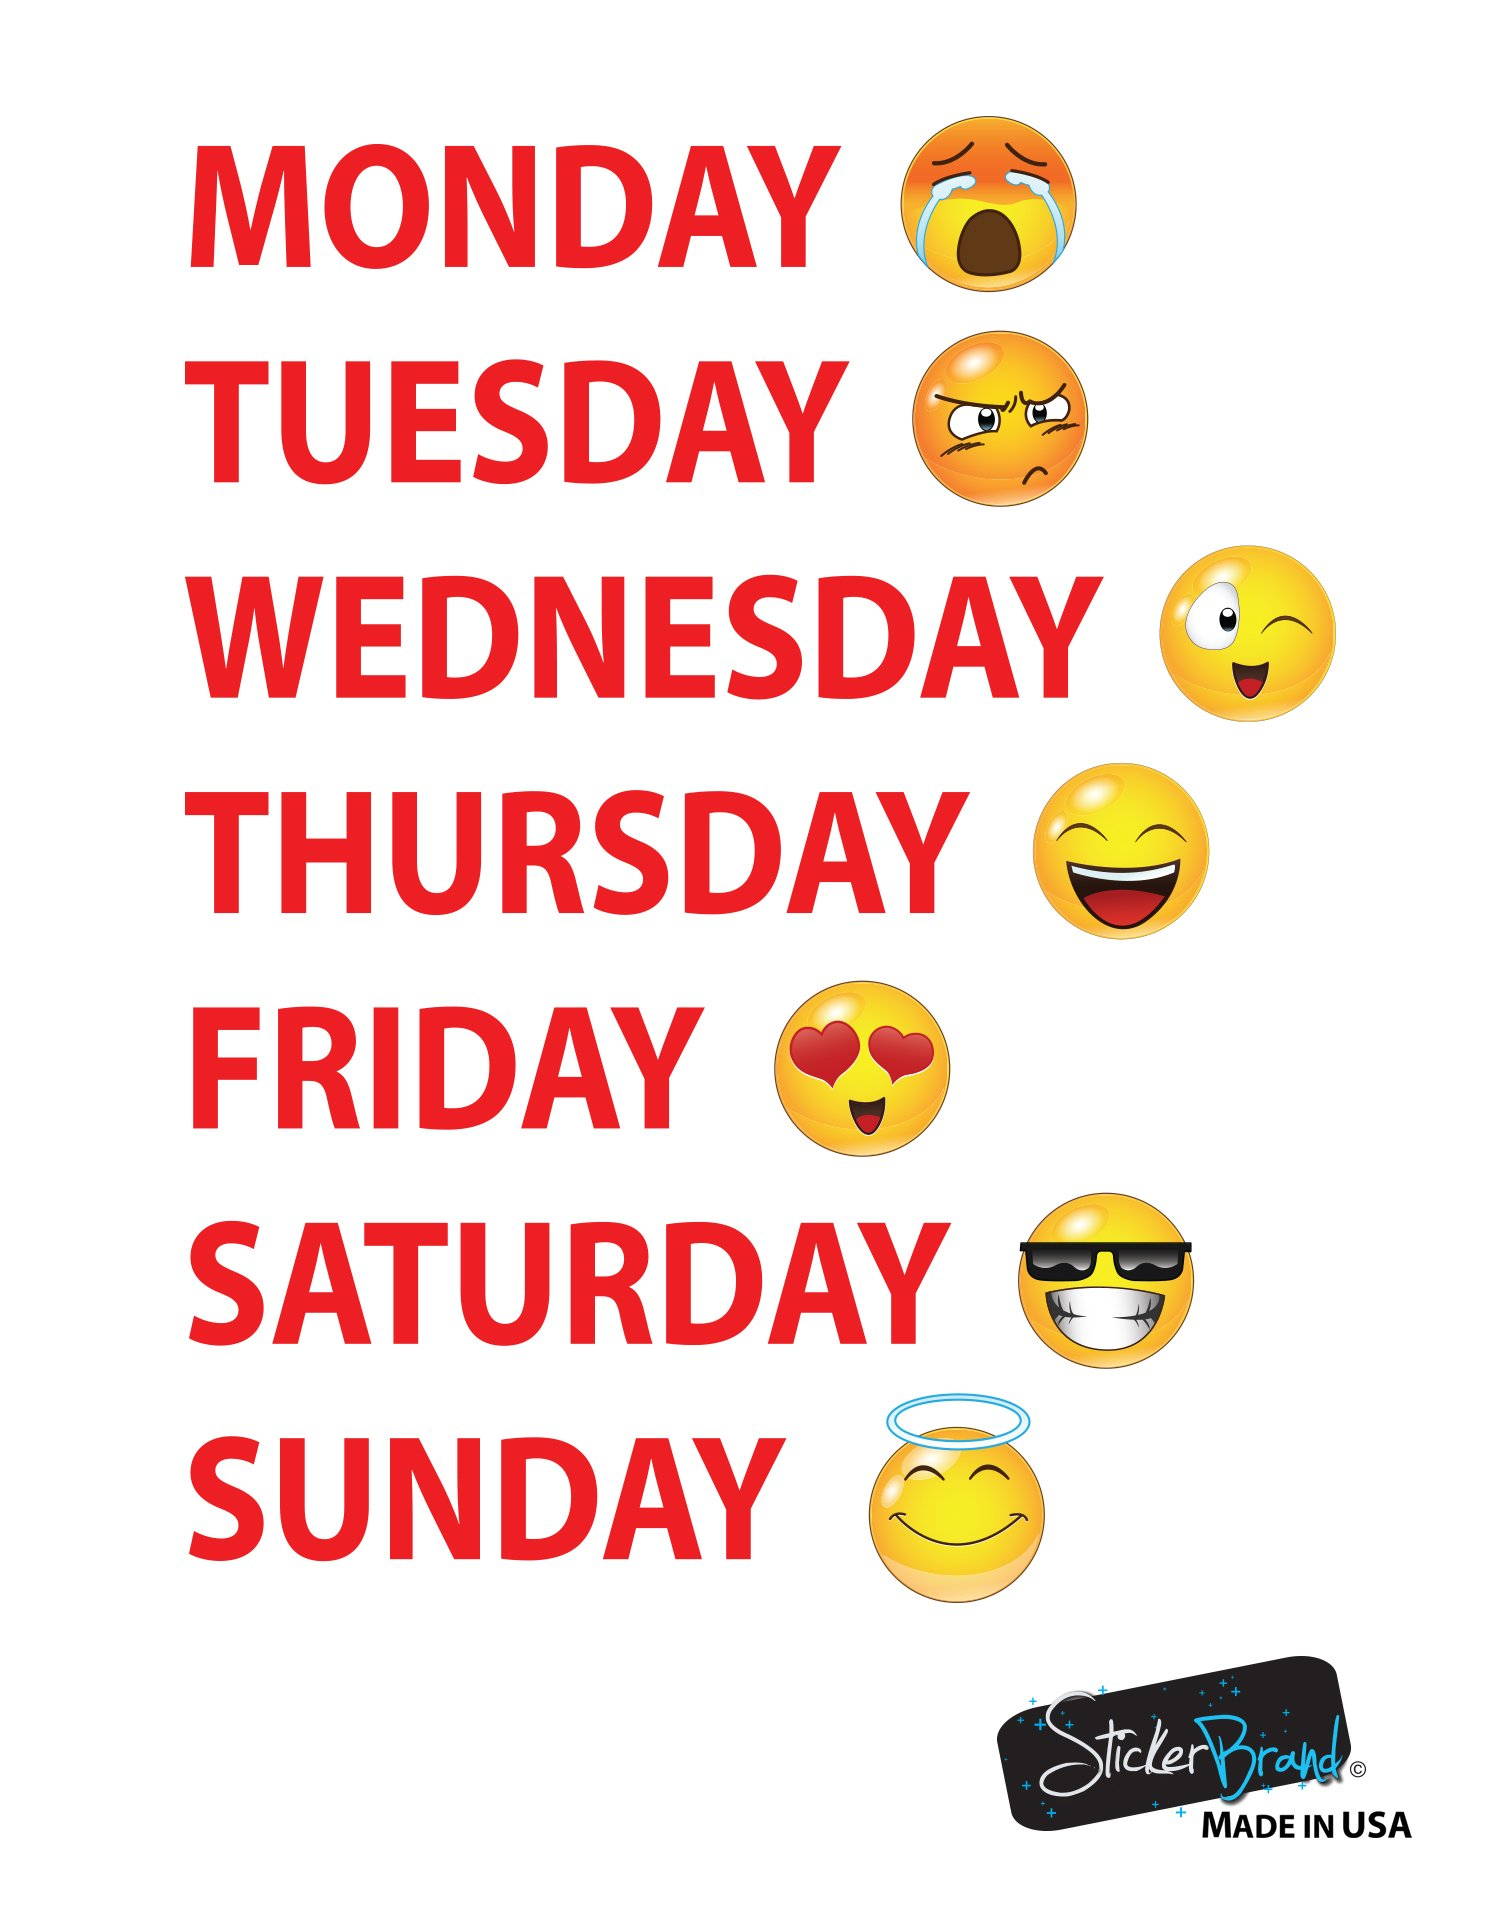 Days Of The Week Emojis Calendar Wall Decal Sticker #6071 How To Make Mini Calendars Of Only Monday To Friday